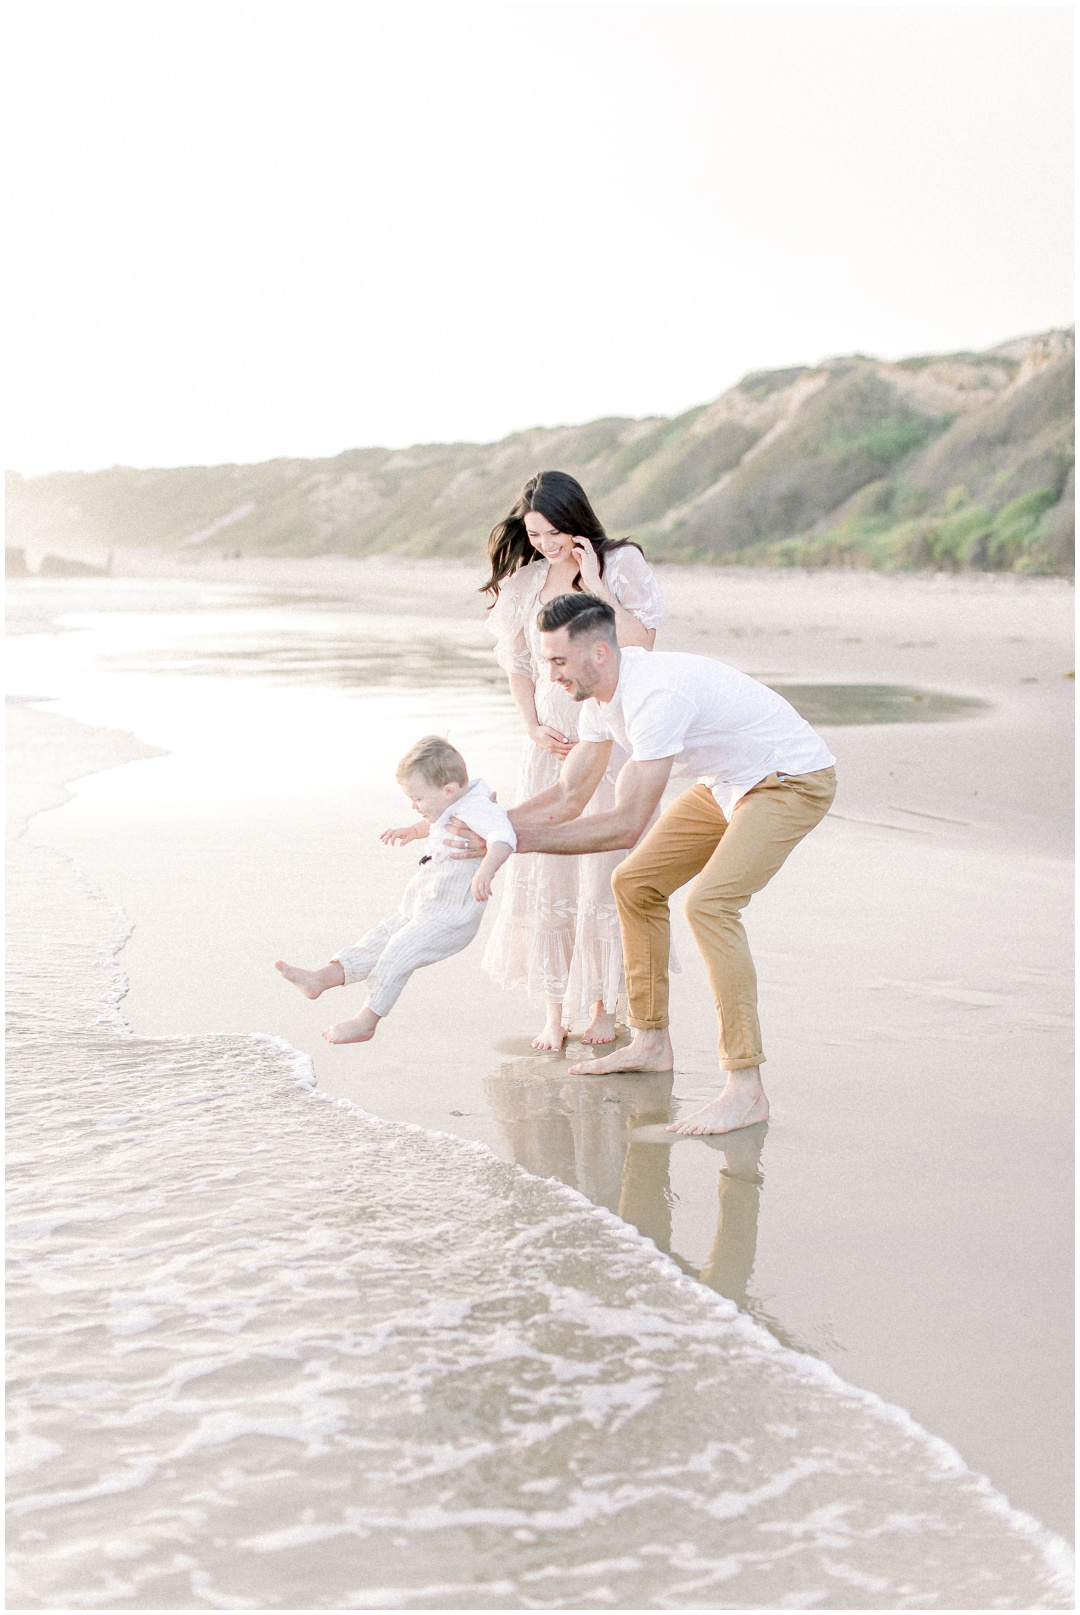 Newport_Beach_Newborn_Light_Airy_Natural_Photographer_Newport_Beach_Photographer_Orange_County_Family_Photographer_Cori_Kleckner_Photography_Huntington_Beach_Photographer_Family_OC_Newborn_Danielle_Lawley_Parker_Maternity_Family_Jordan_Lawley_3354.jpg